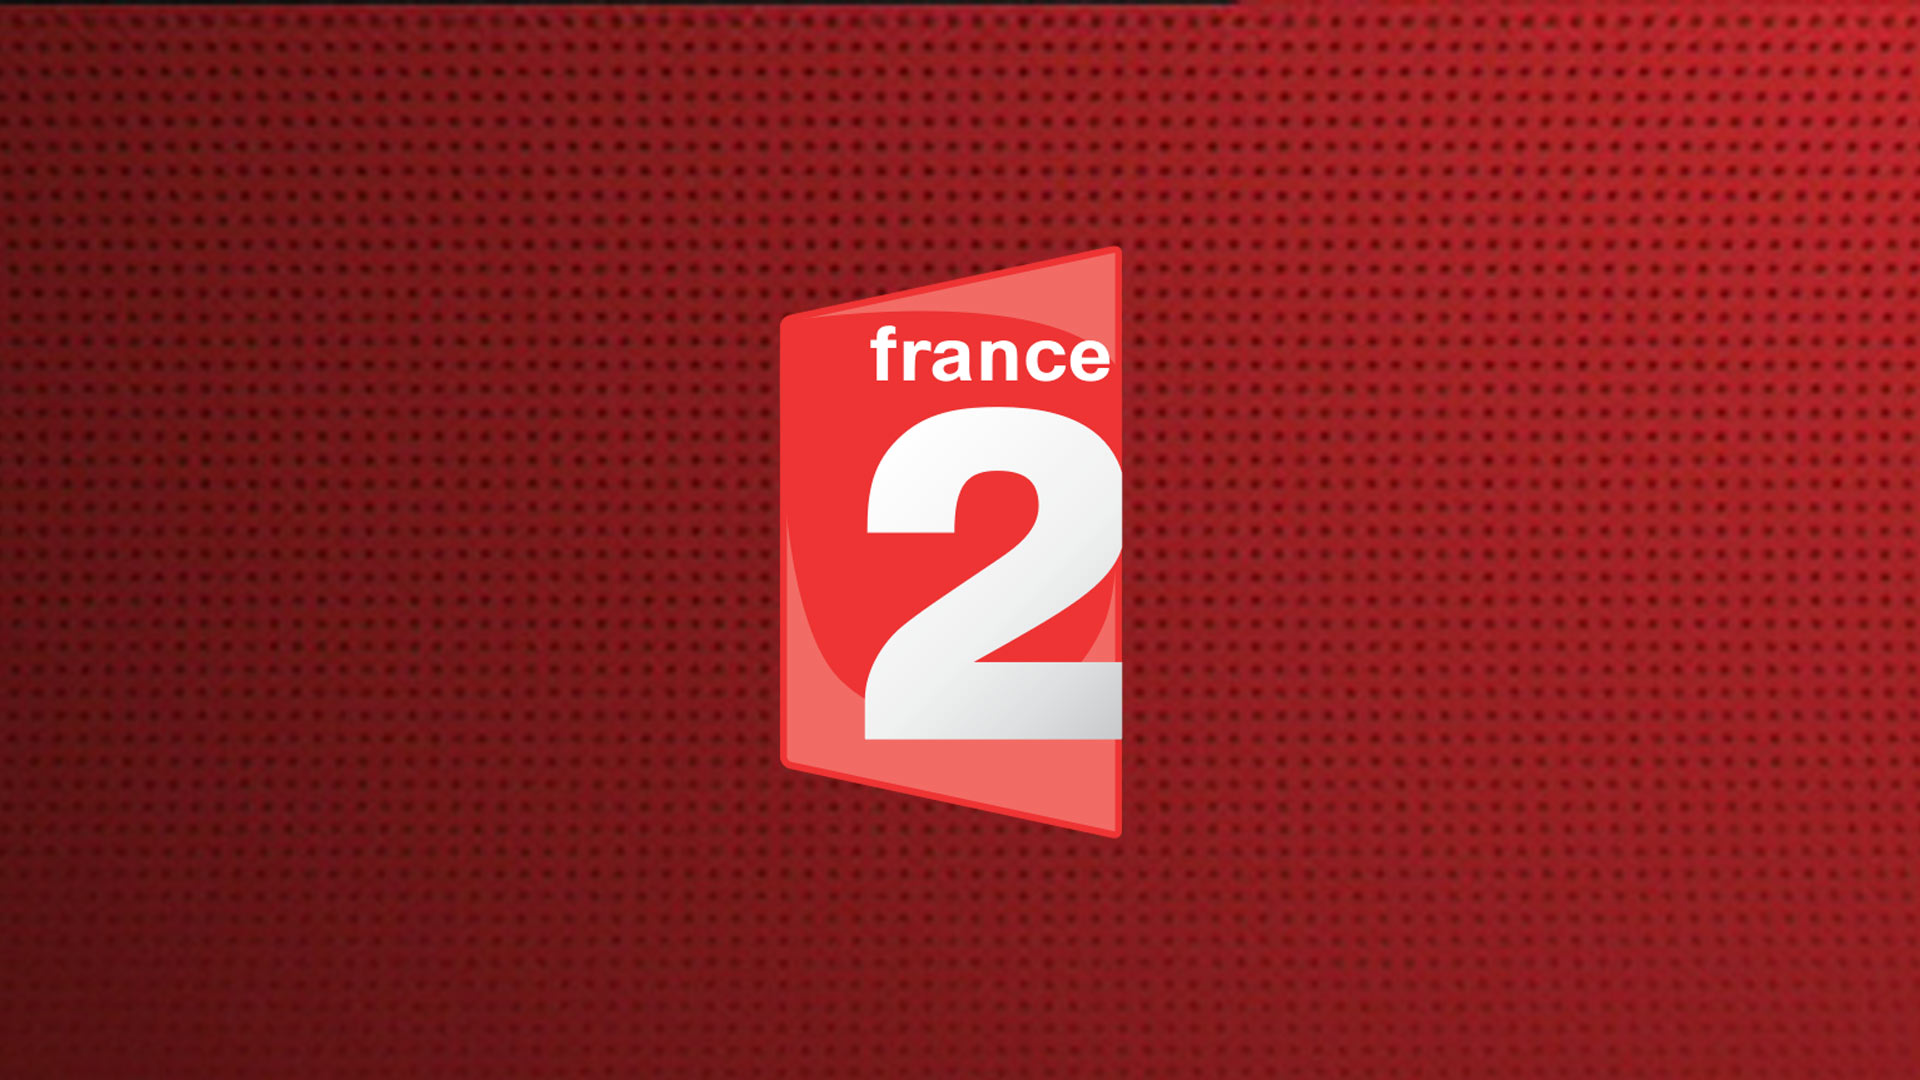 regarder france 2 en direct live 100 gratuit tv direct. Black Bedroom Furniture Sets. Home Design Ideas